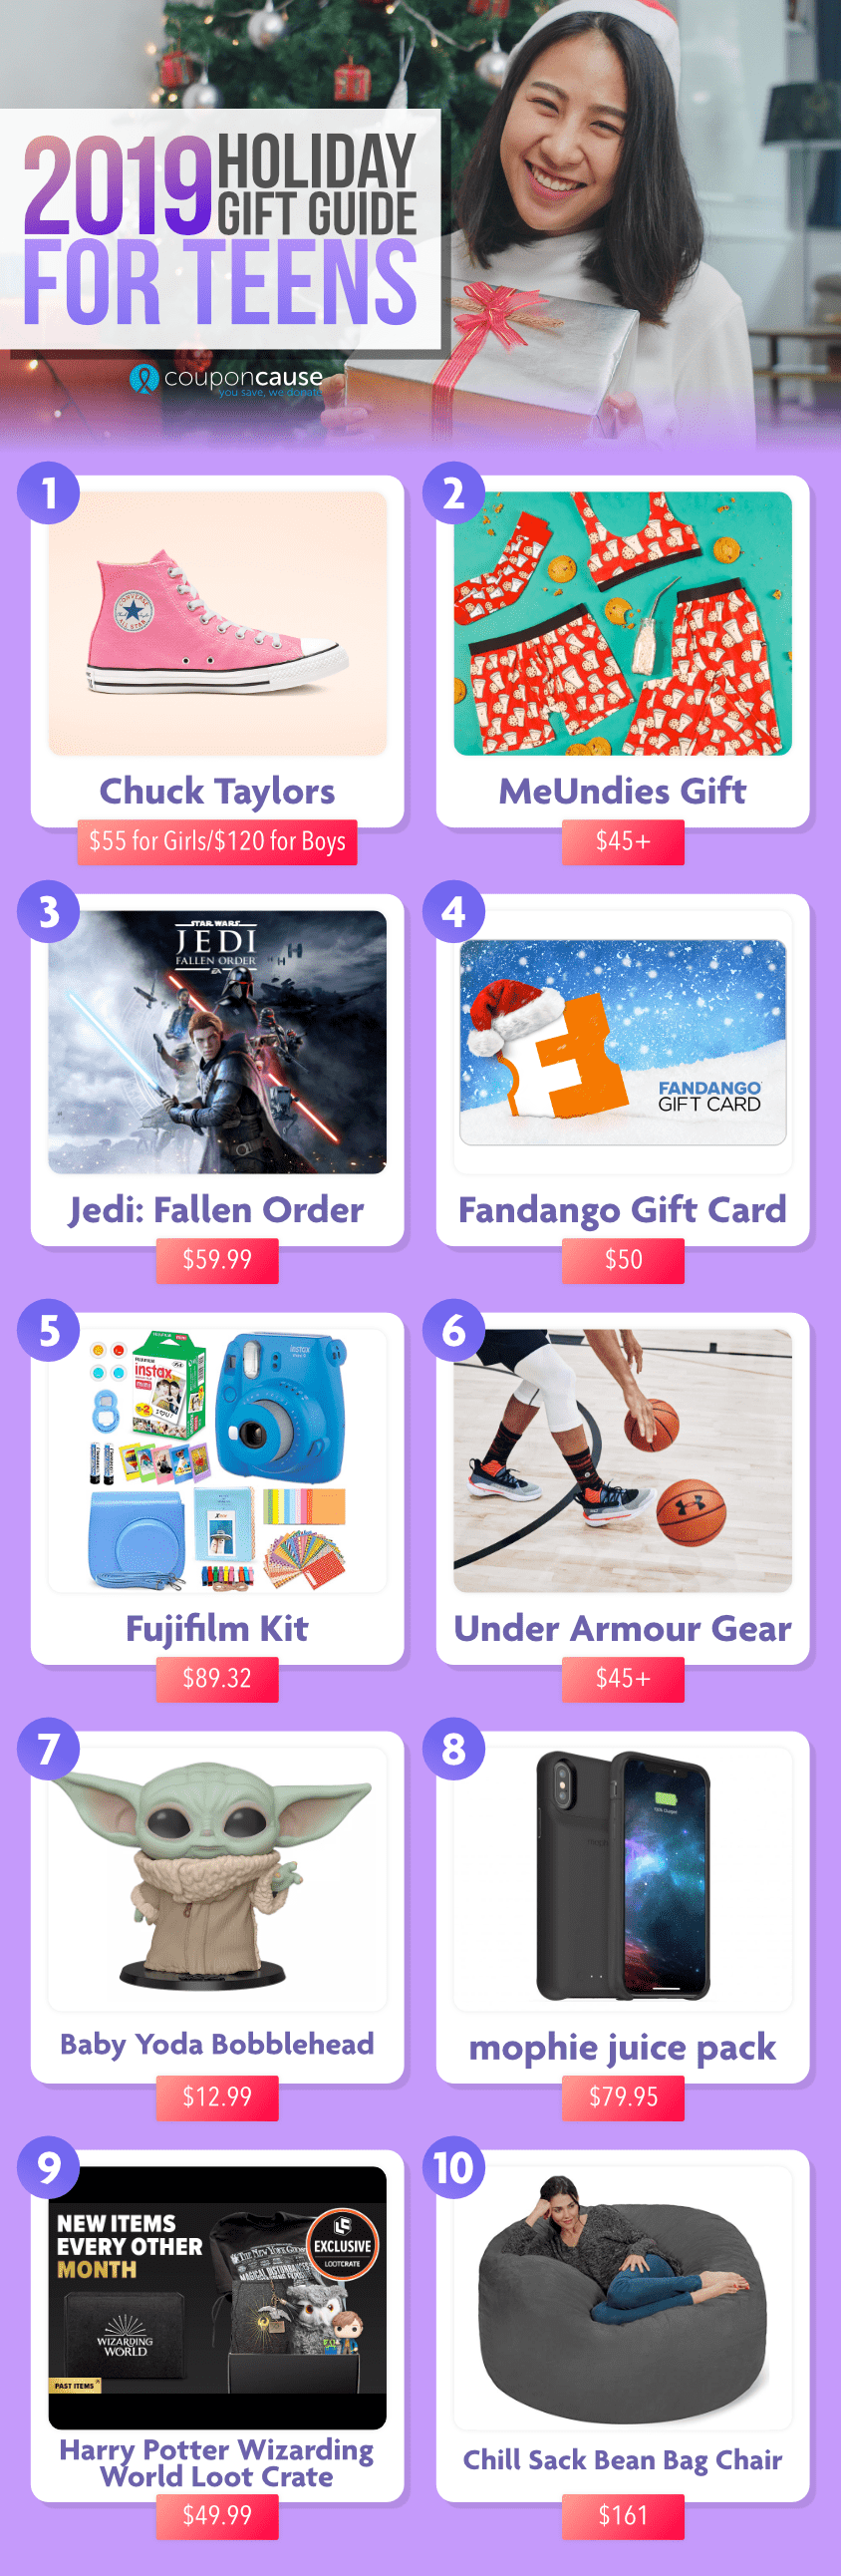 CouponCause Holiday Gift Guide for Teens 2019